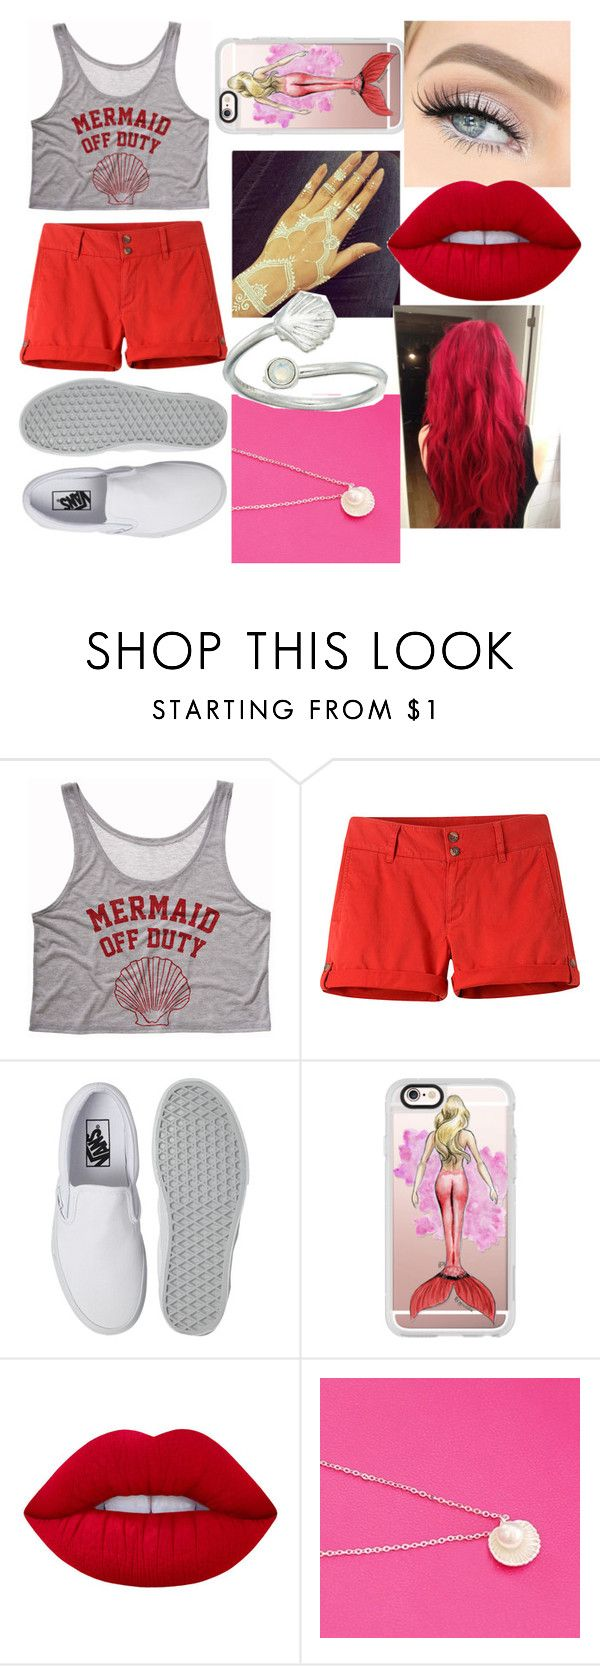 """""""Mermaid off duty"""" by shawnslittlemuffin ❤ liked on Polyvore featuring Mountain Khakis, Vans, Casetify, Lime Crime and Alex and Ani"""